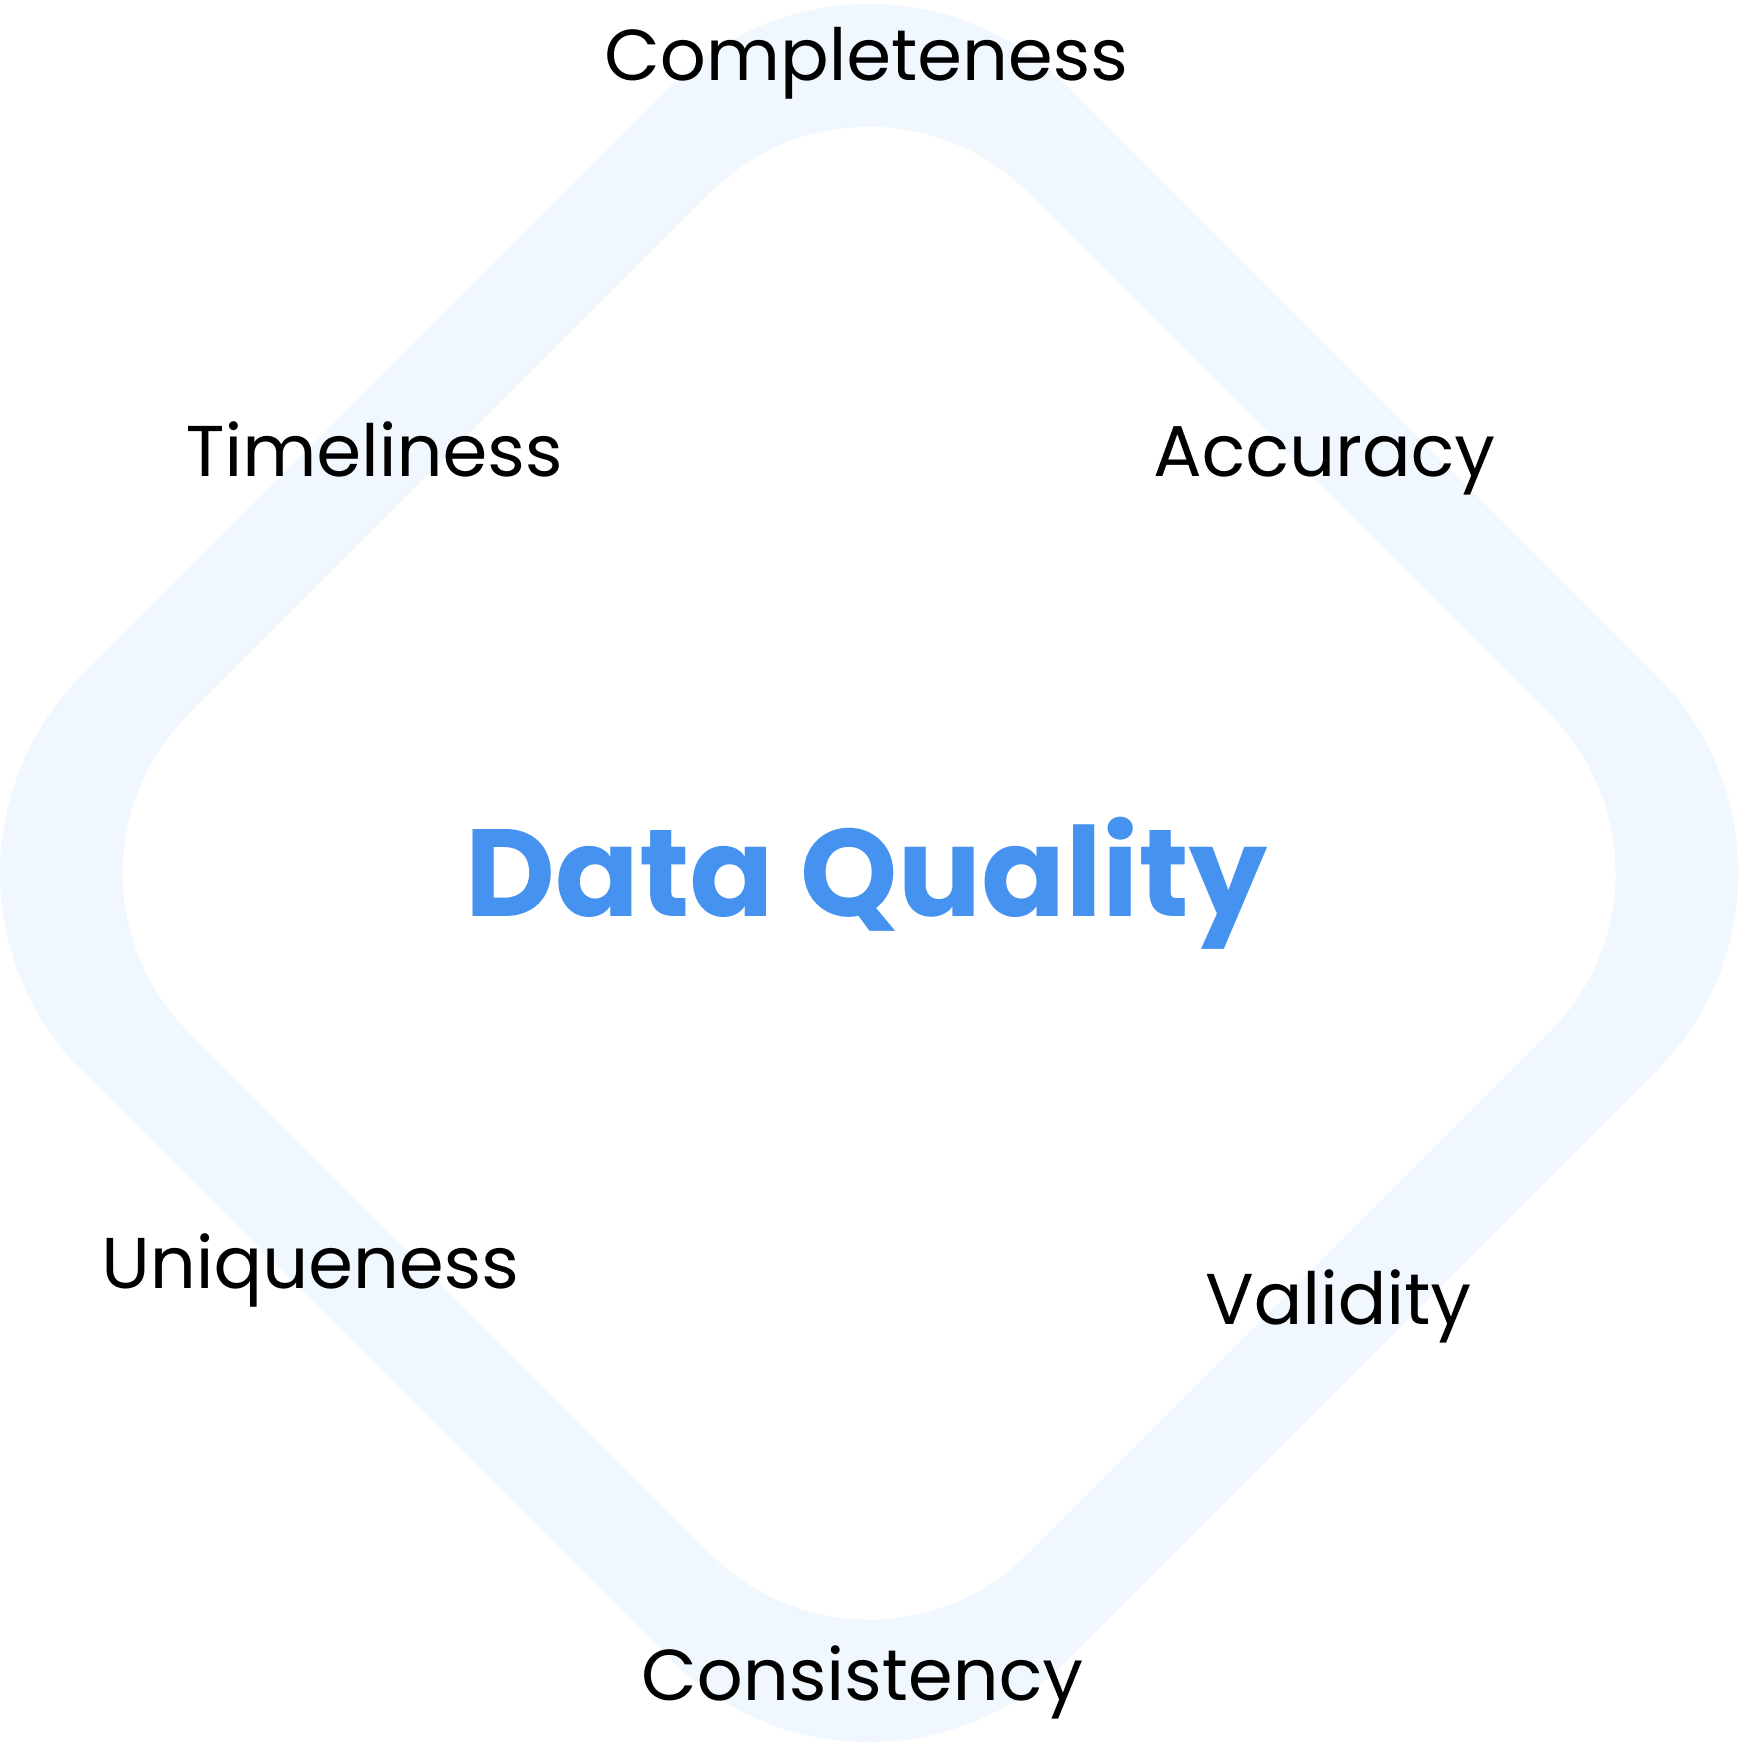 key dimensions of data quality include completeness, accuracy, validity, consistency, uniqueness, timeliness